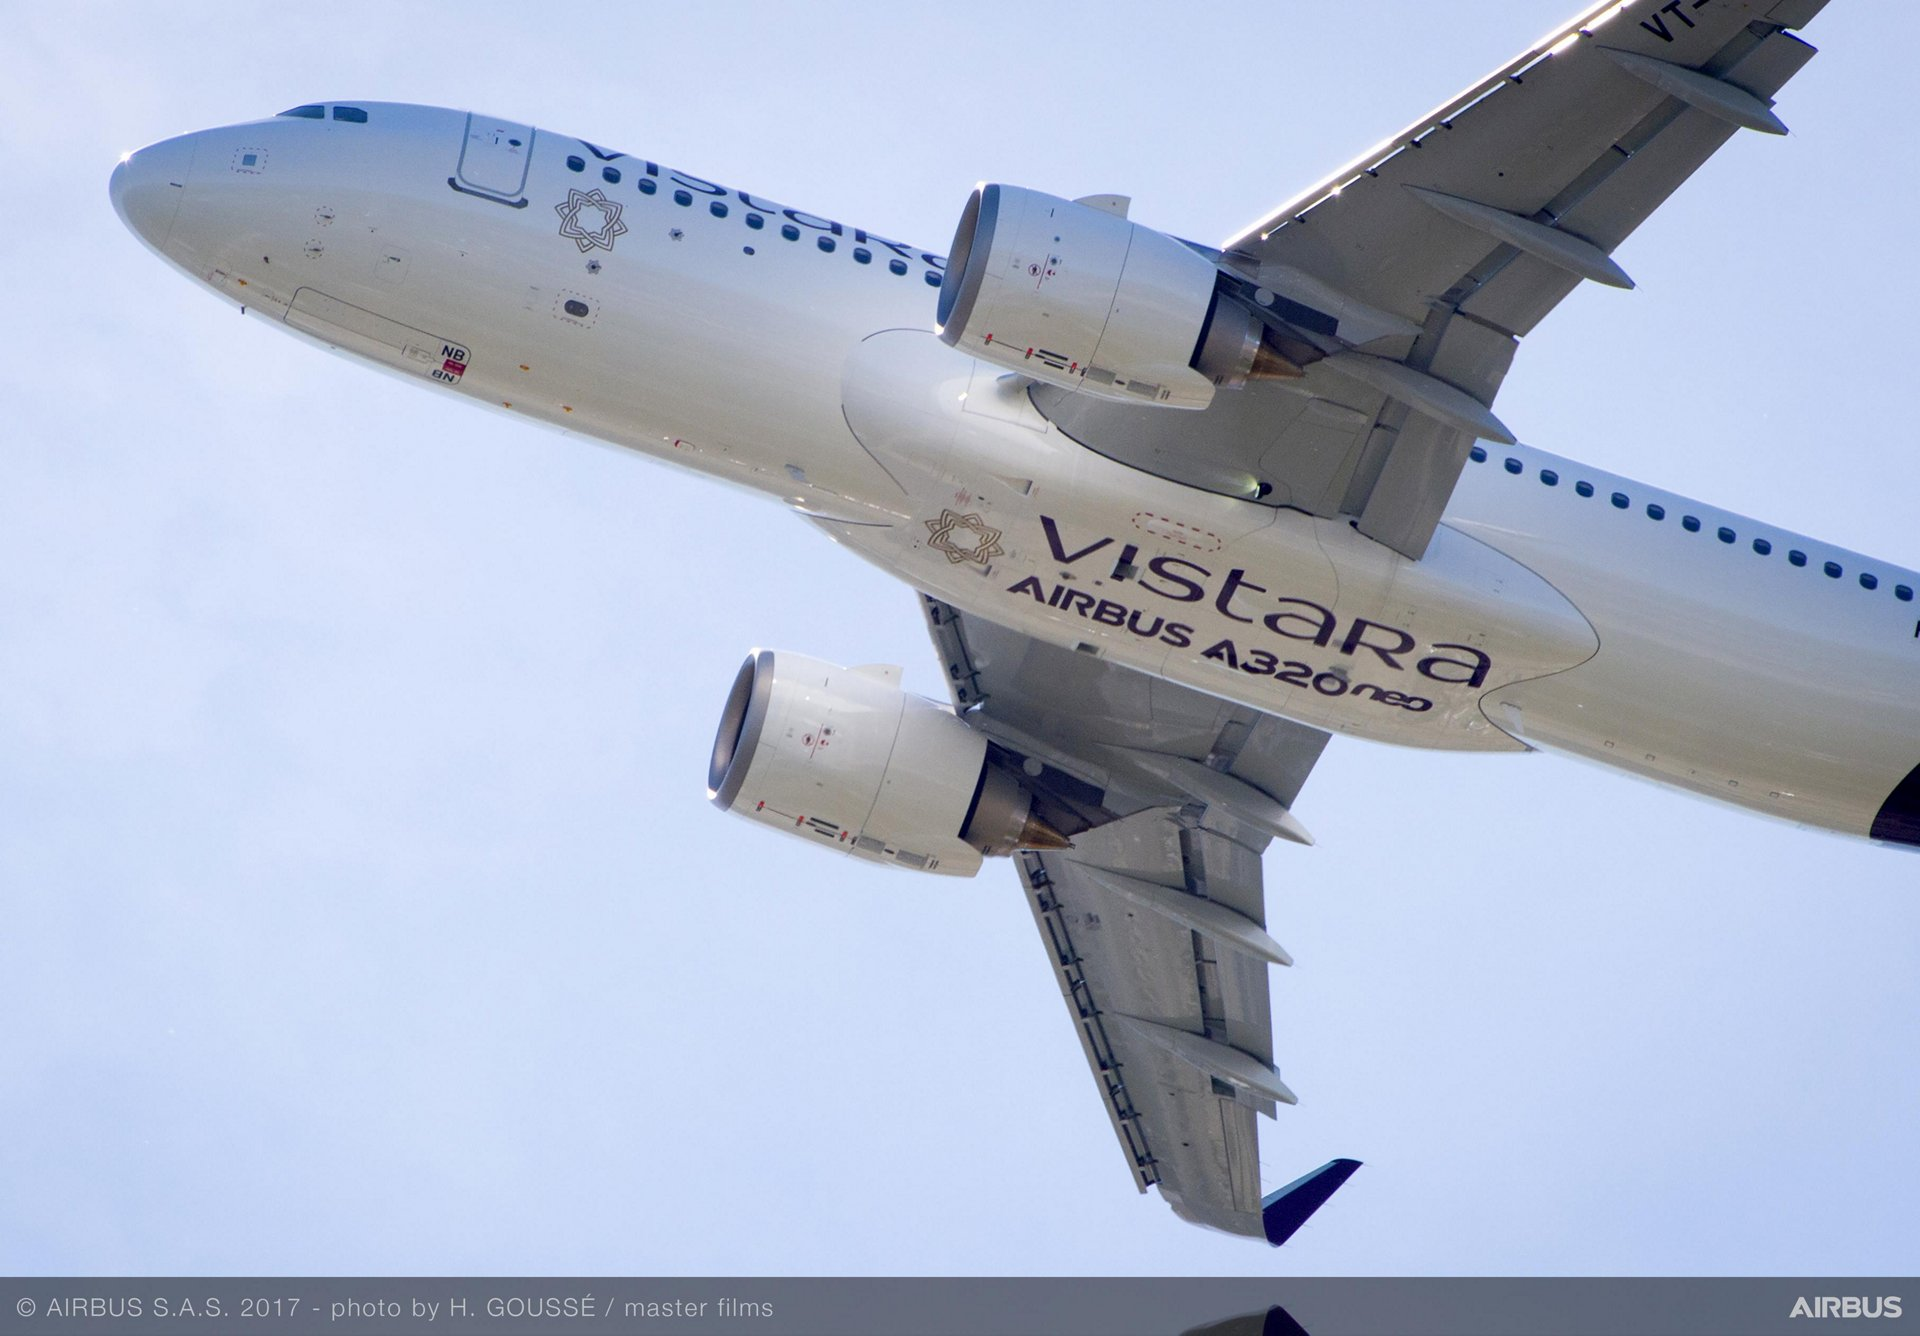 Vistara's first A320neo – delivered by Airbus in May 2017 – is configured in a three-class layout with 158 seats (8 business class, 24 premium and 126 economy class)